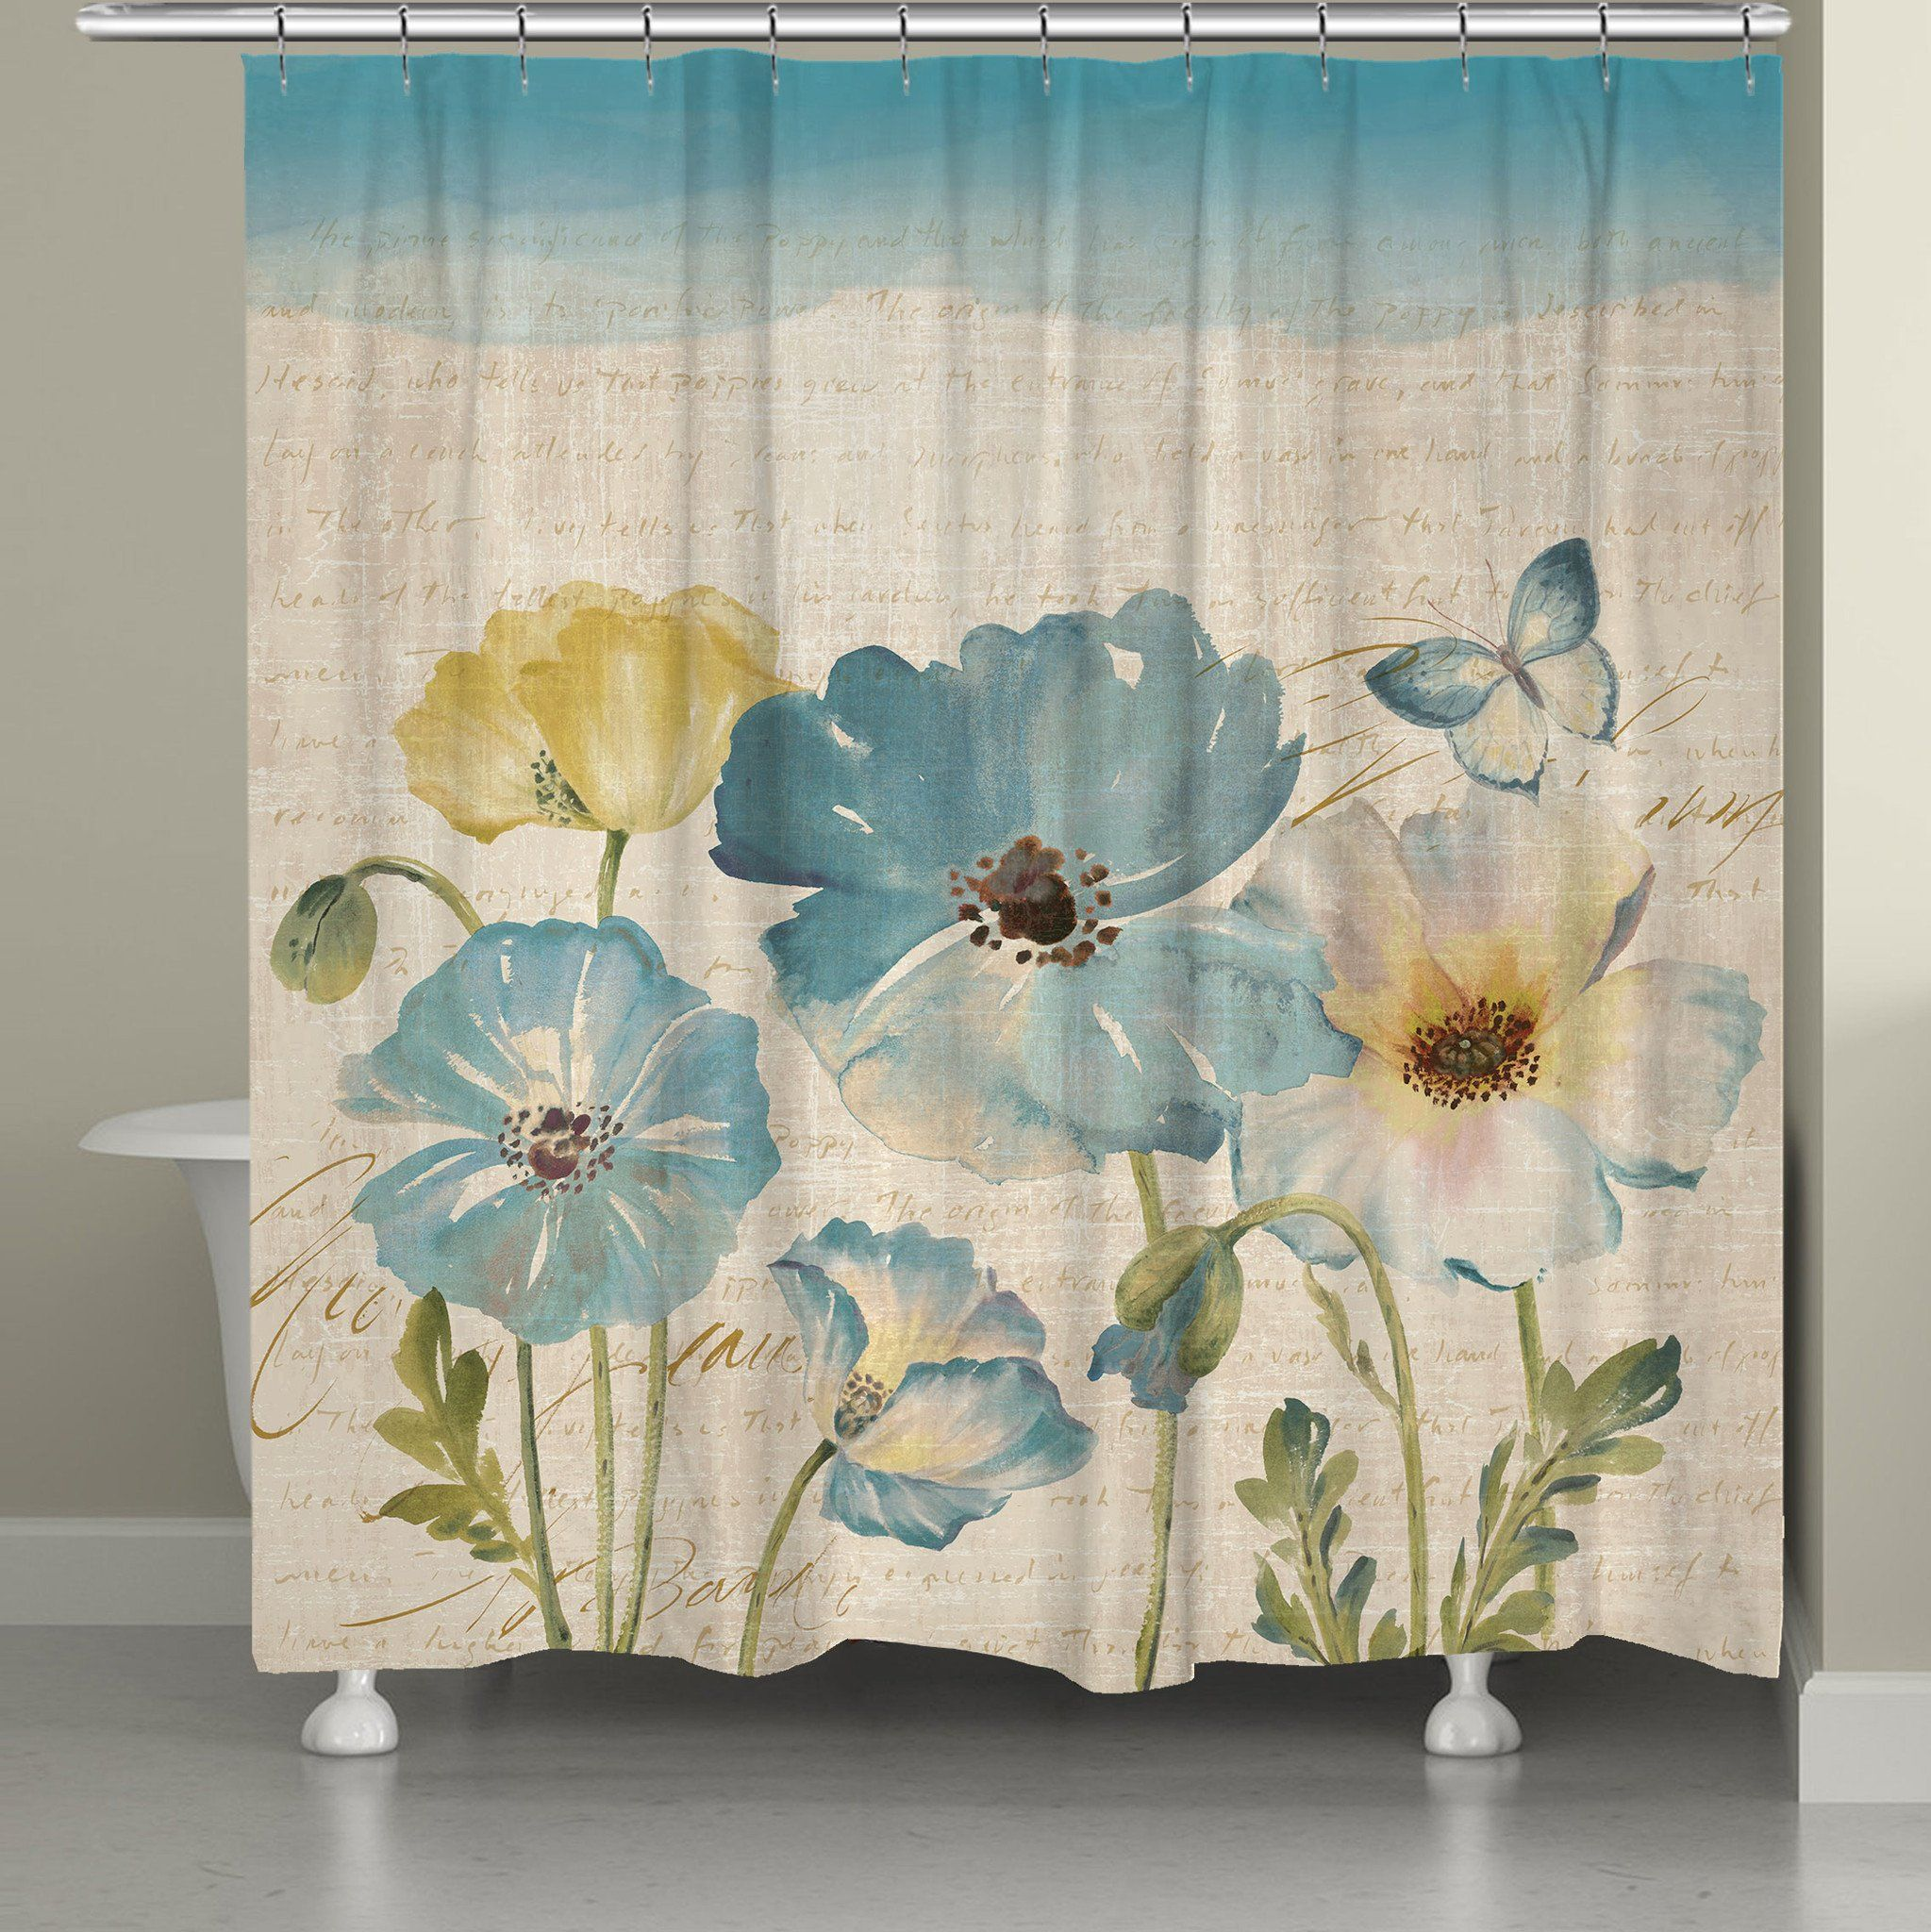 Teal Watercolor Poppies Shower Curtain Poppy Shower Curtain